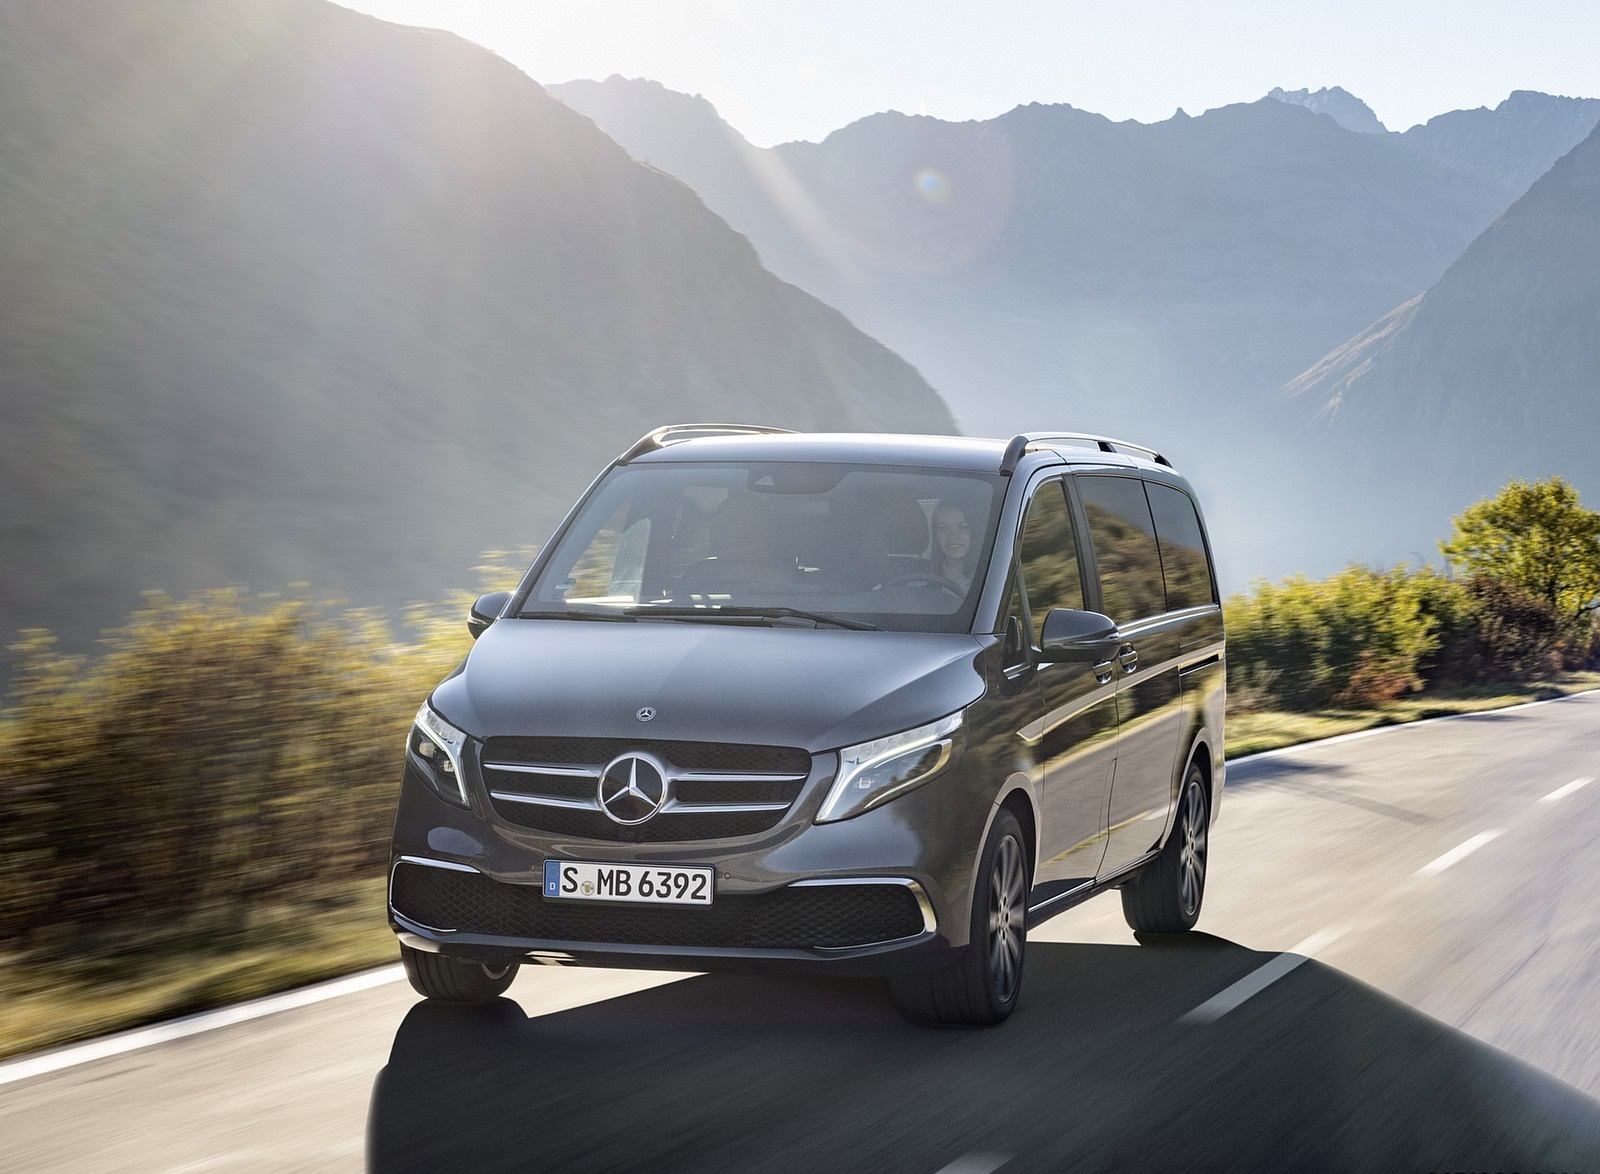 2019 Mercedes-Benz V-Class EXCLUSIVE Line (Color: Selenit Grey Metallic) Front Wallpaper (10)